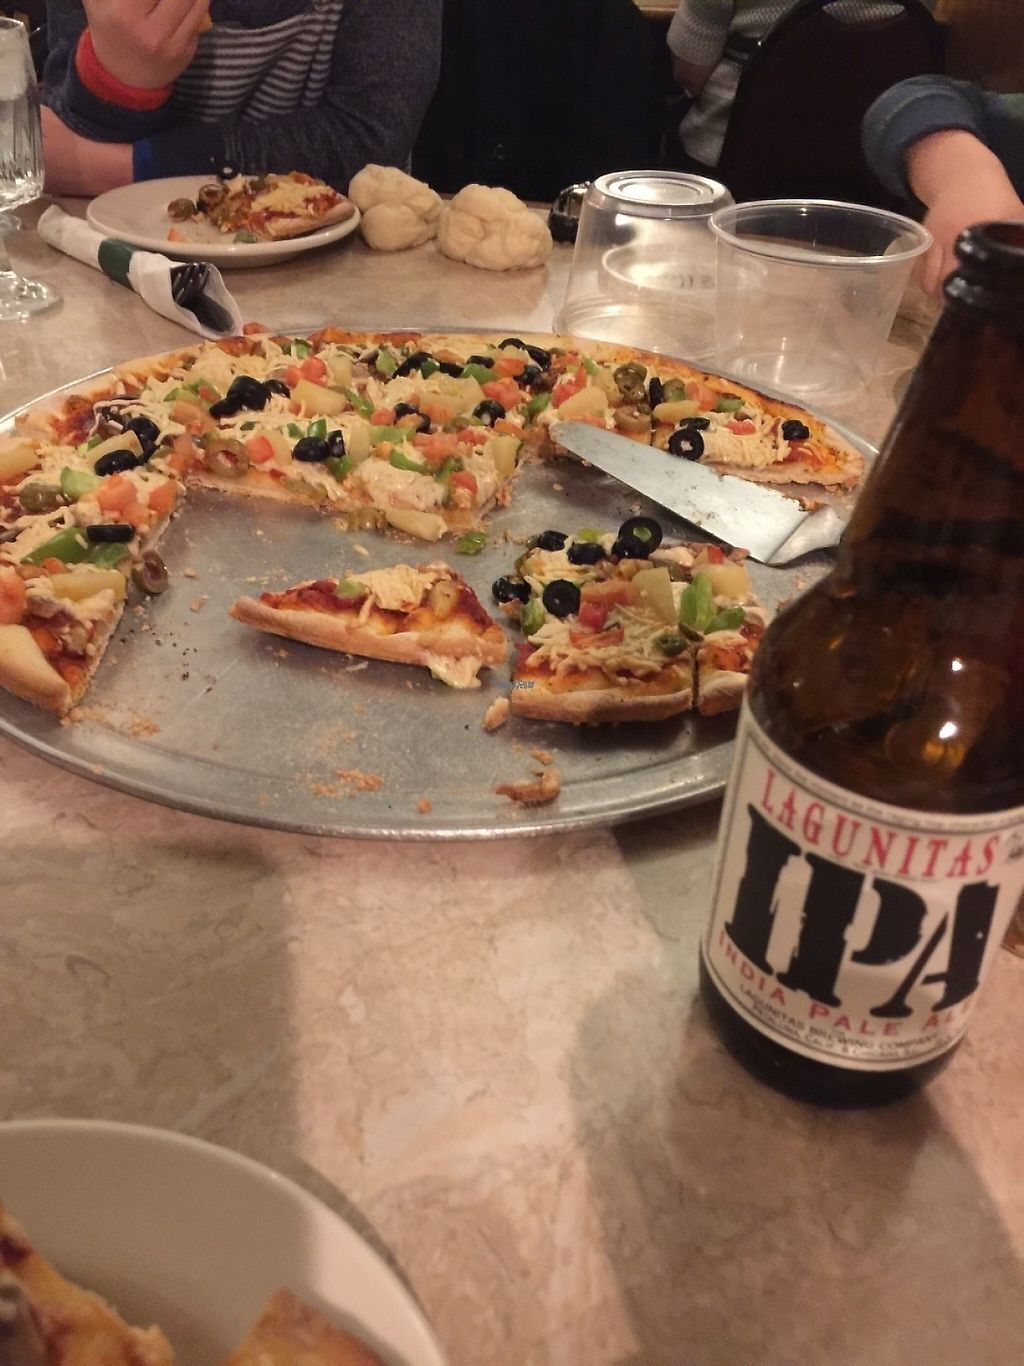 """Photo of John's Restaurant  by <a href=""""/members/profile/TgNeisewander"""">TgNeisewander</a> <br/>Vegetarian pizza with Daiya cheese.  <br/> January 25, 2017  - <a href='/contact/abuse/image/86024/216650'>Report</a>"""